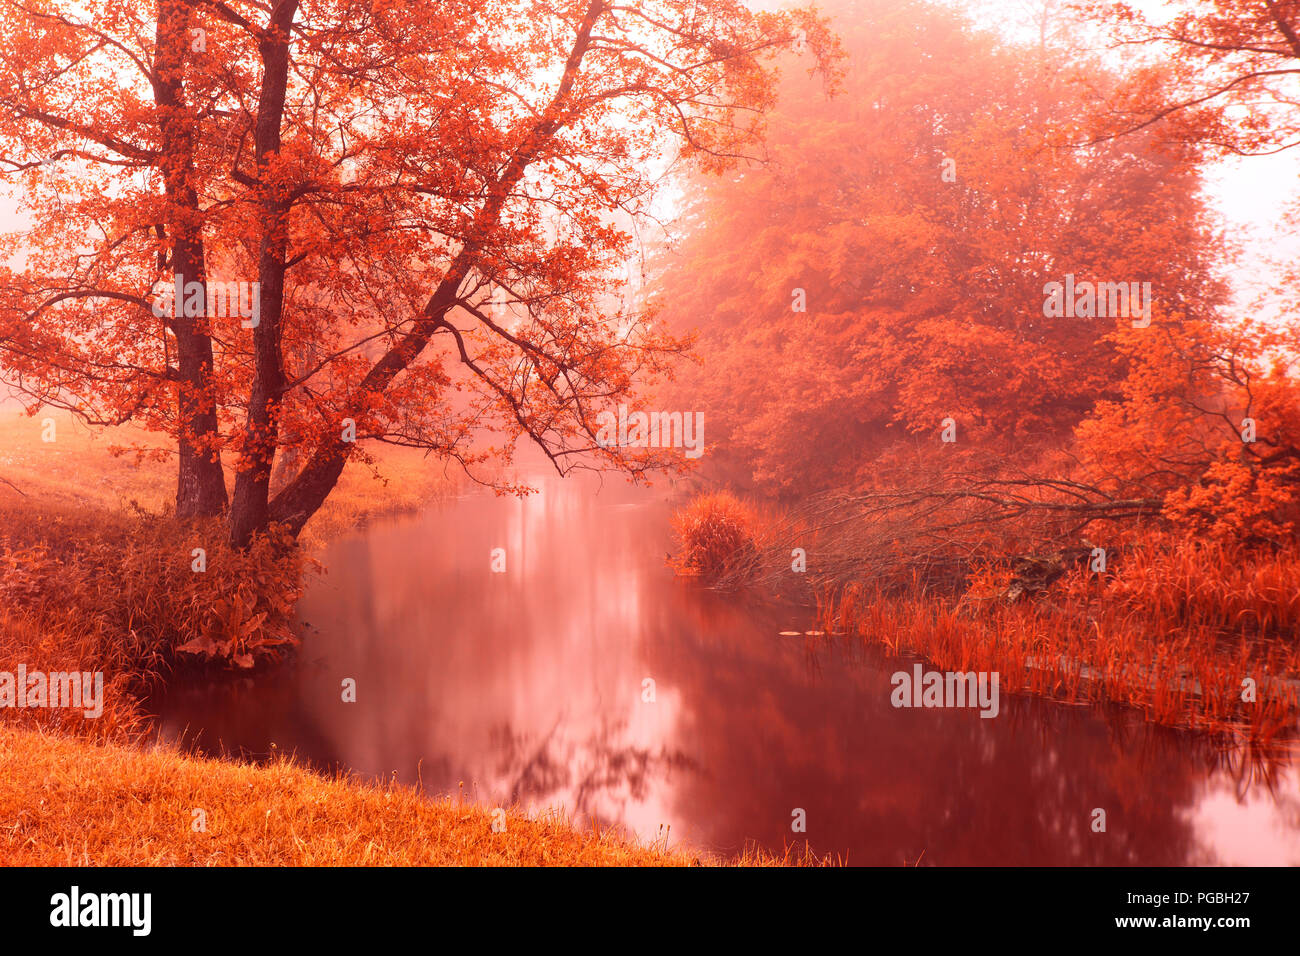 Fall colors on autumn foggy river. Alden trees on riverbank. Autumn misty morning. Autumn dawn scene - Stock Image